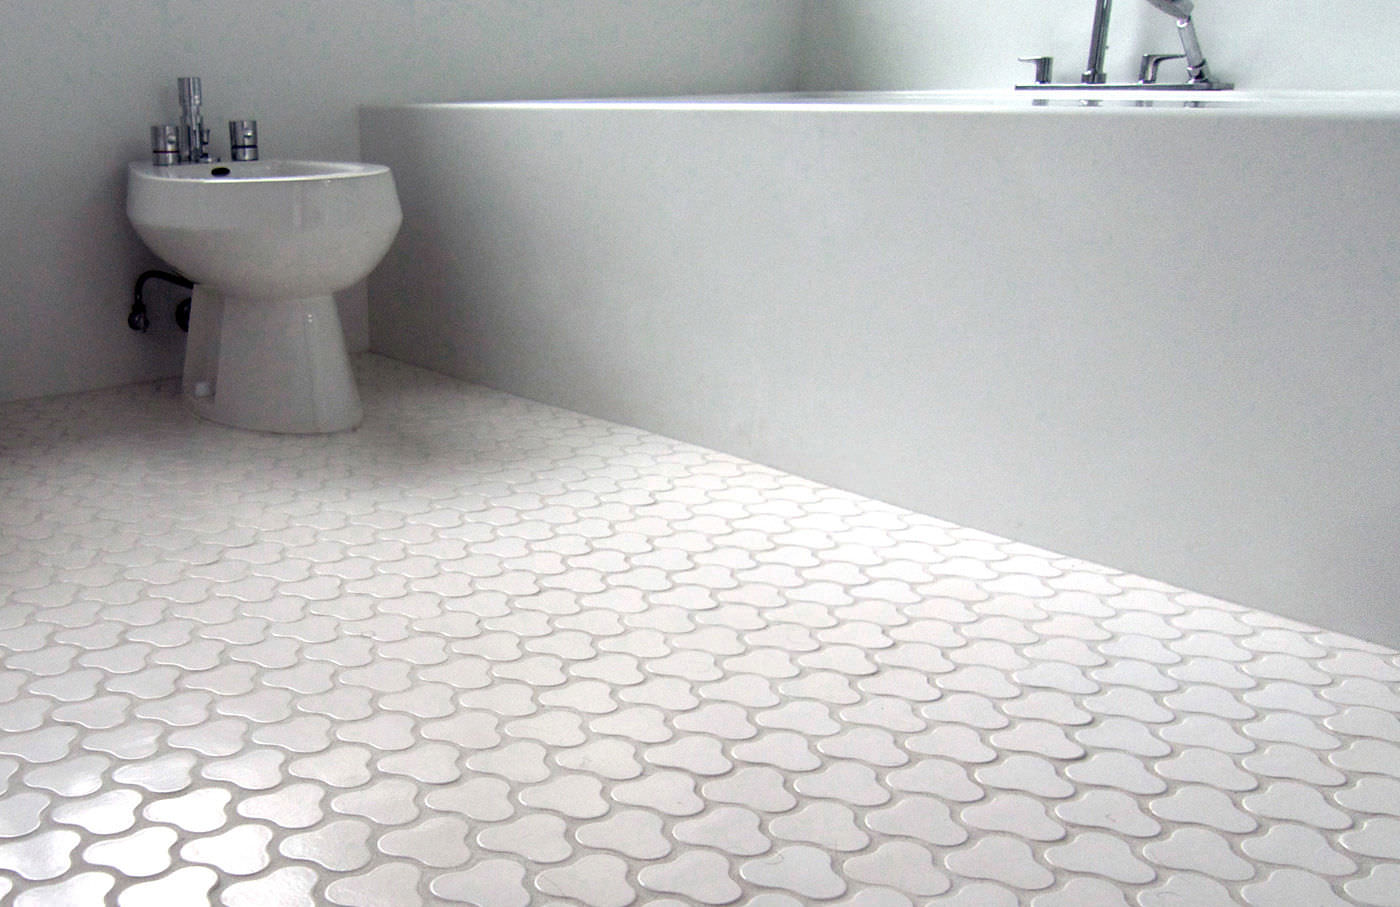 Indoor Tile Bathroom Floor Ceramic Bom Daniel Ogassian